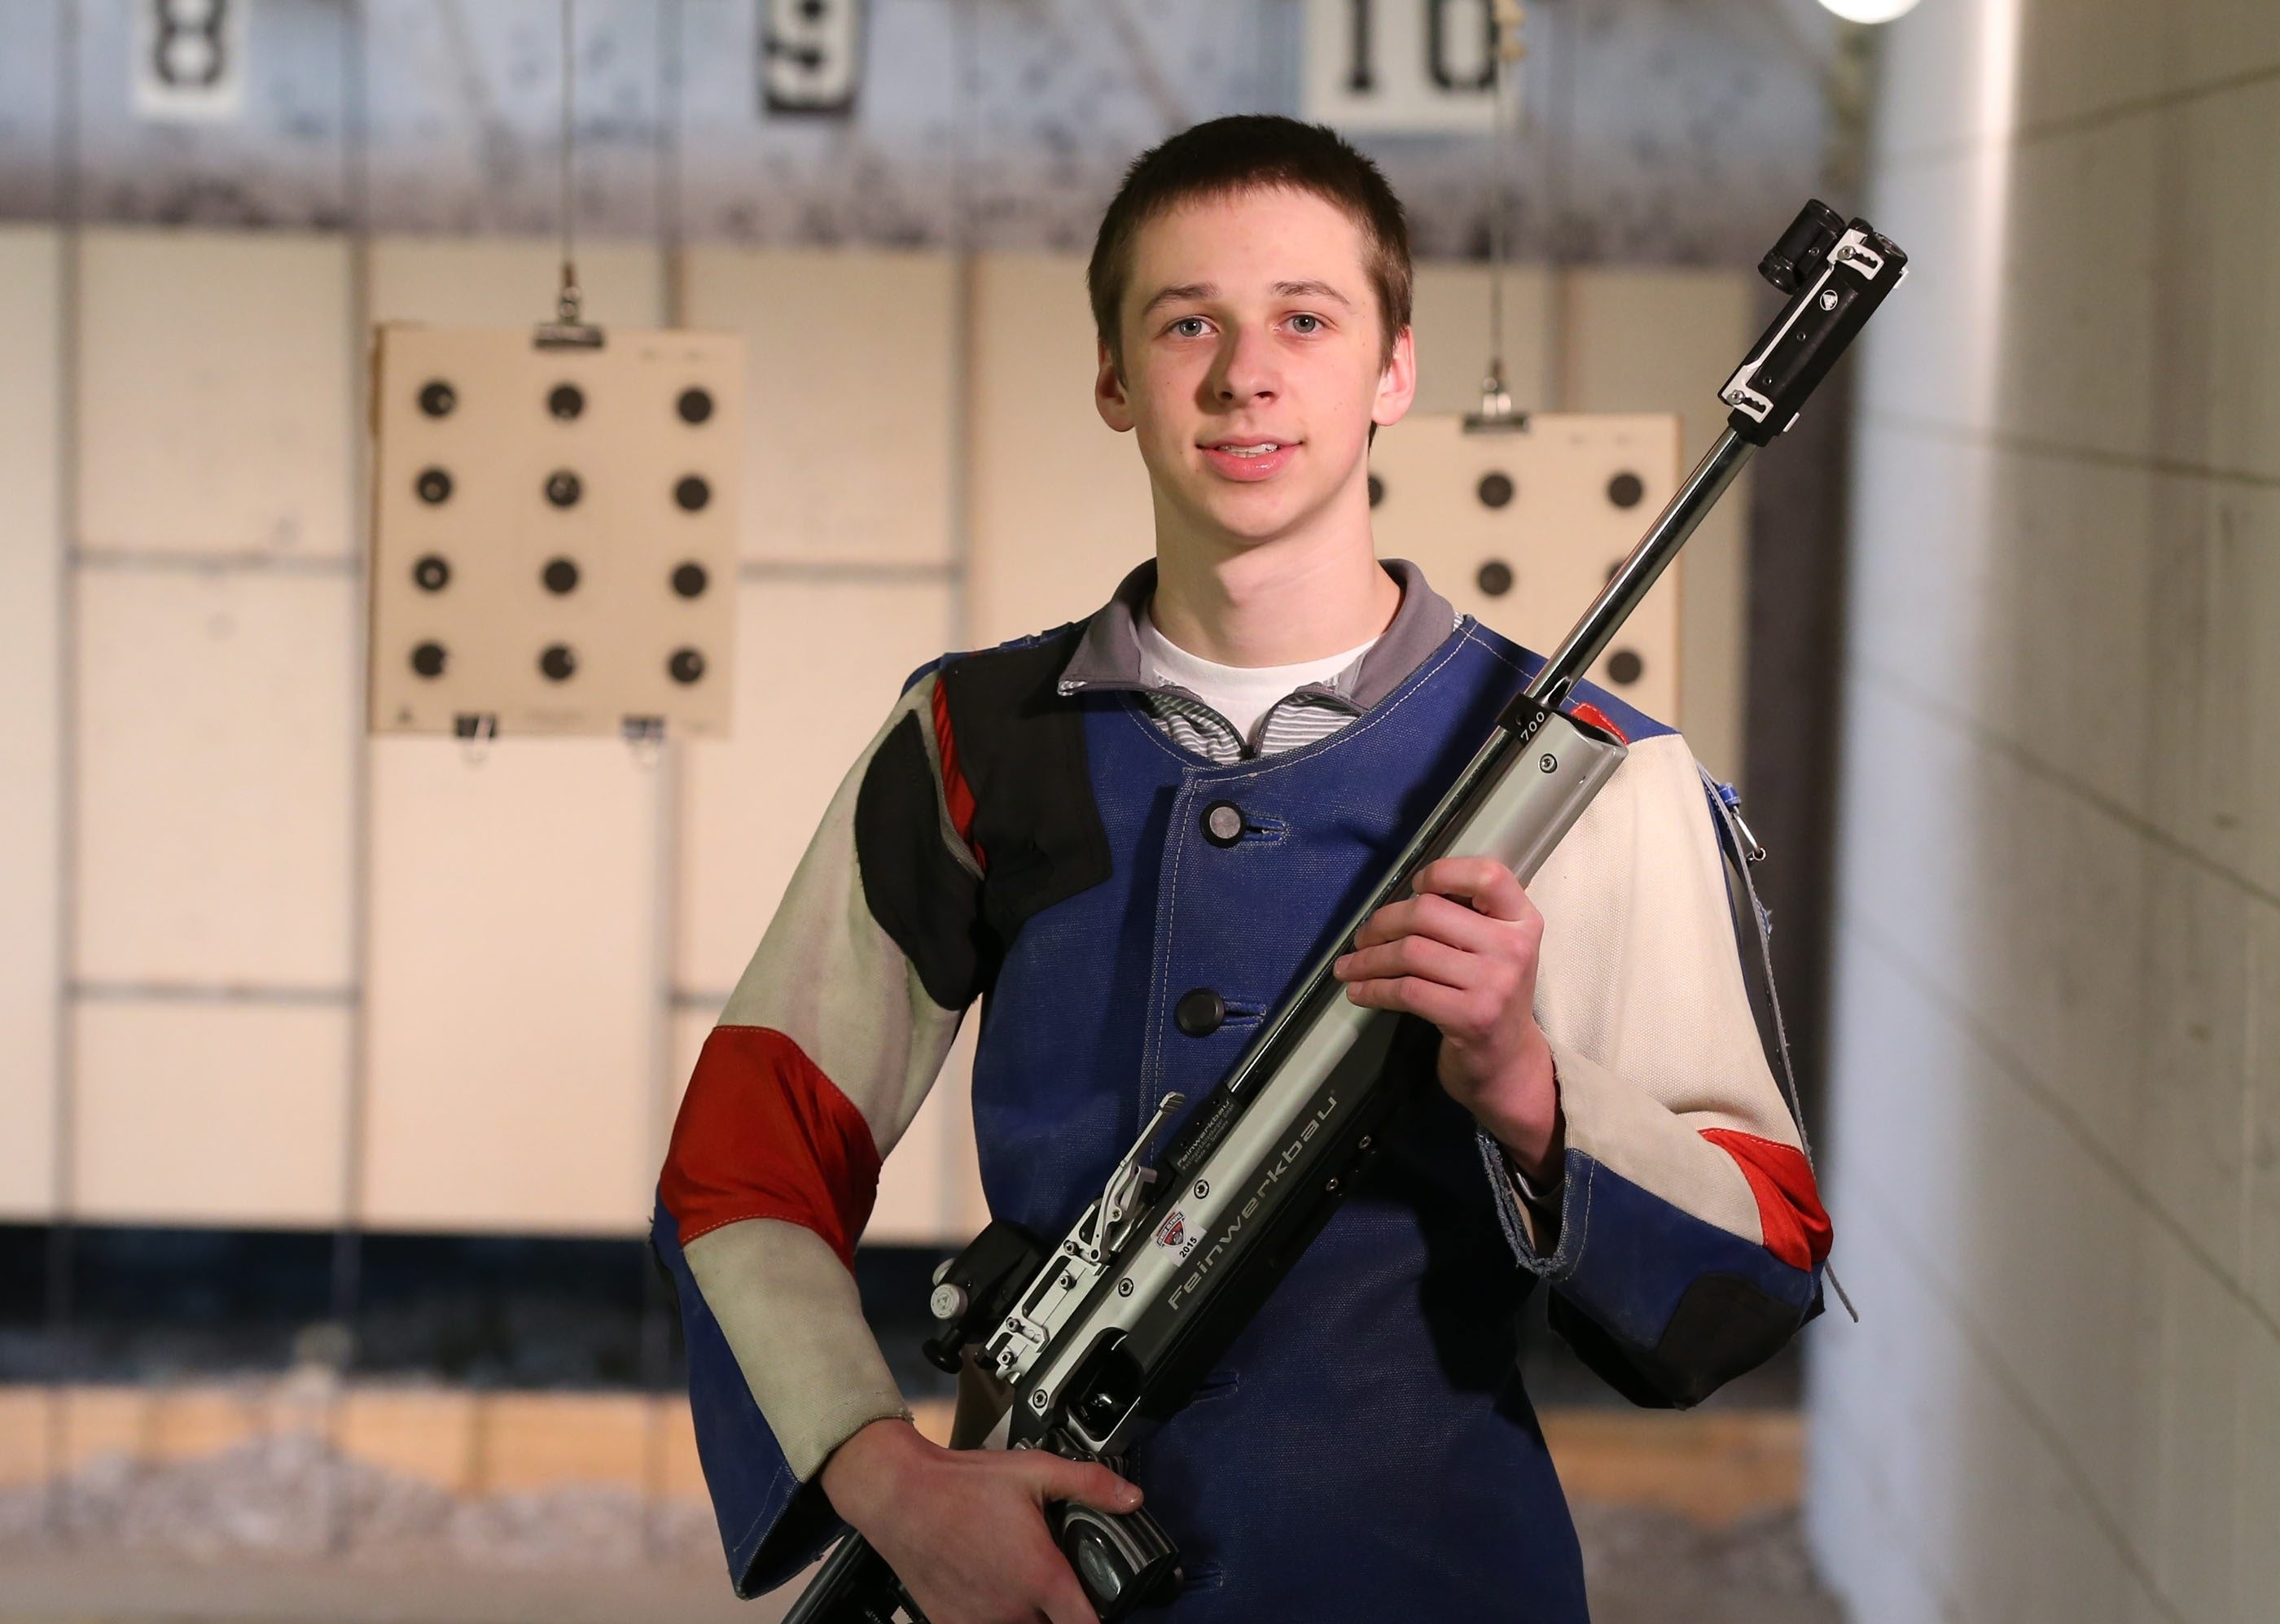 Alden's Noah Fox poses with his rifle in the shooting range at Alden Middle School. (James P. McCoy/ Buffalo News)